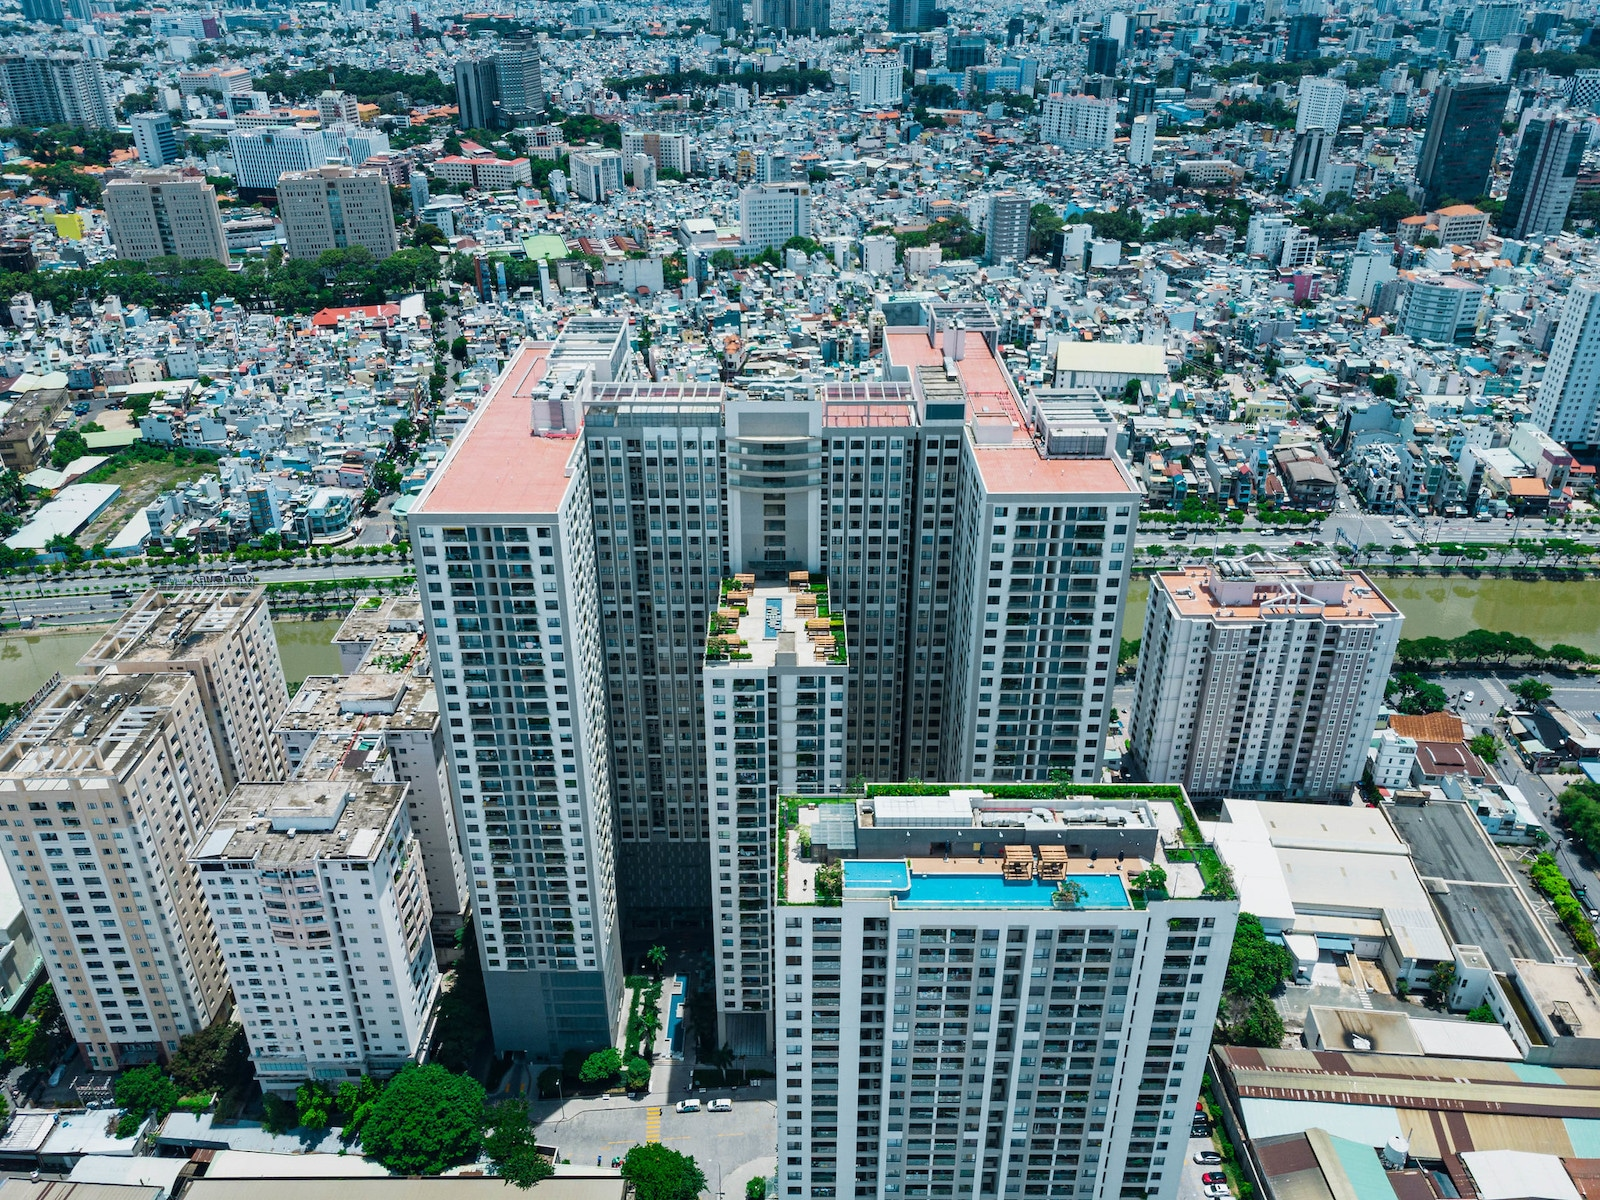 Image of the Gold View Apartment building in District 6, HCMC, Vietnam